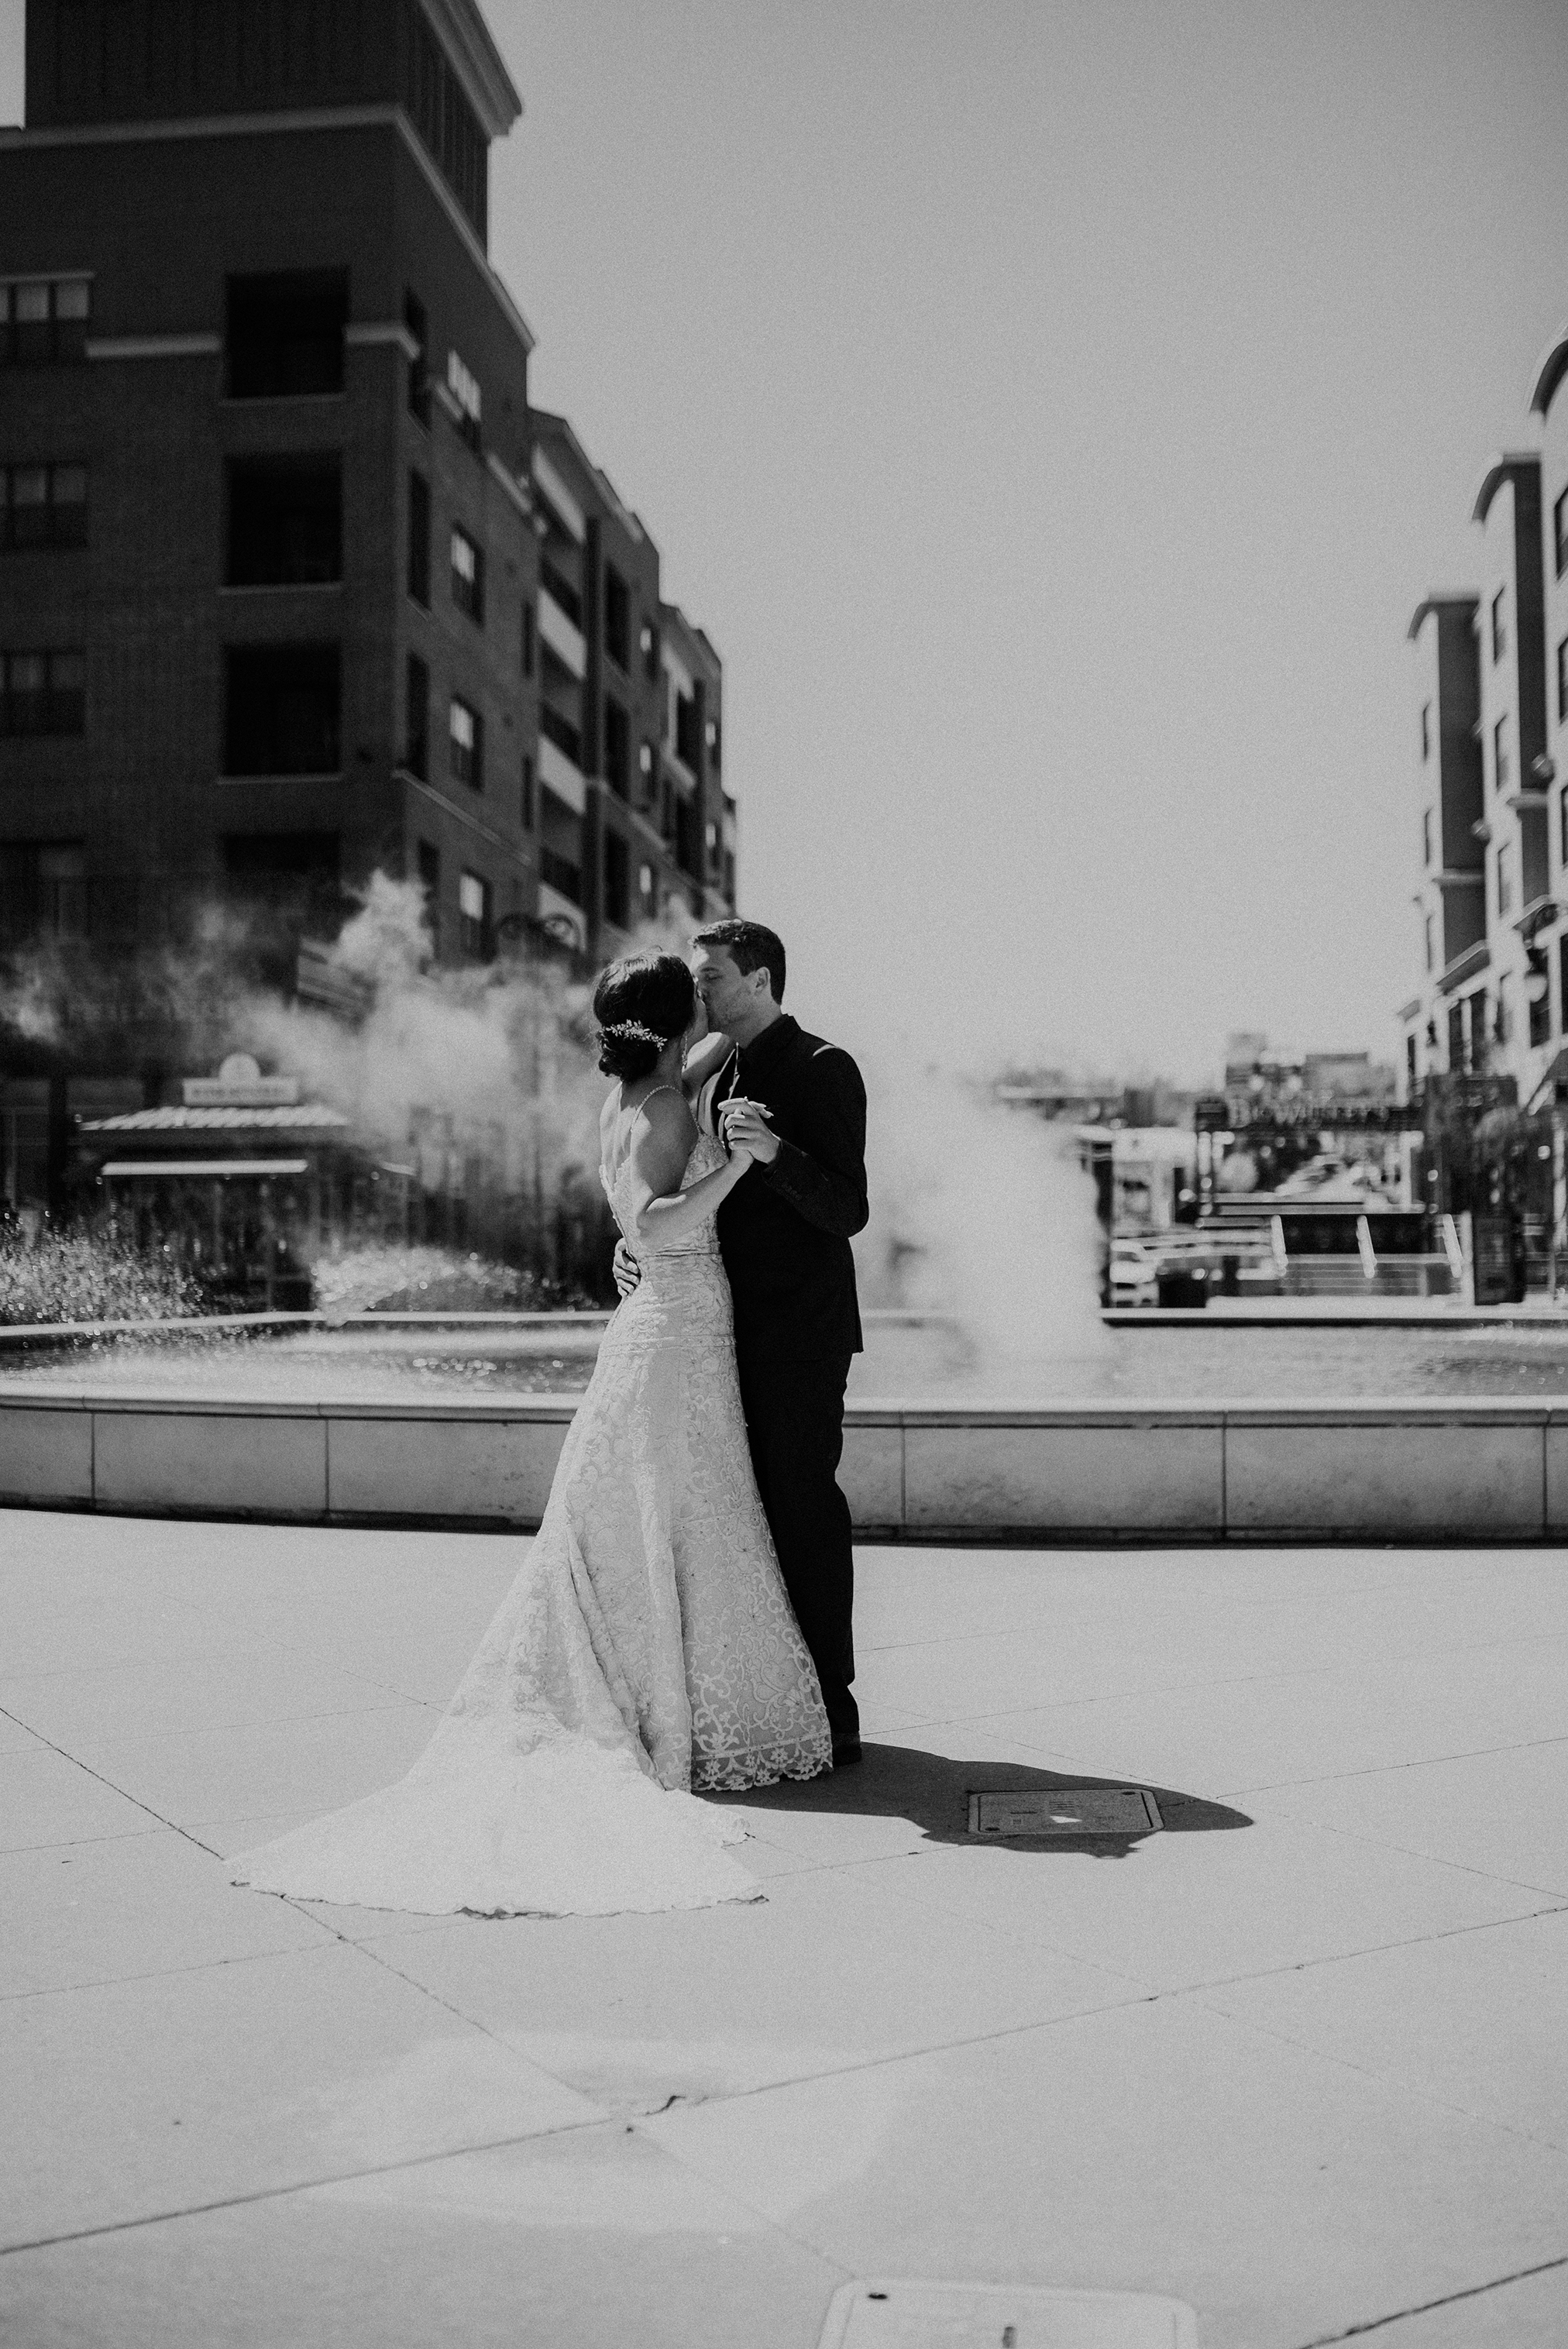 Saskatoon wedding photographer. Intimate weddings and elopements. Capturing the beauty of your love story, as it is.